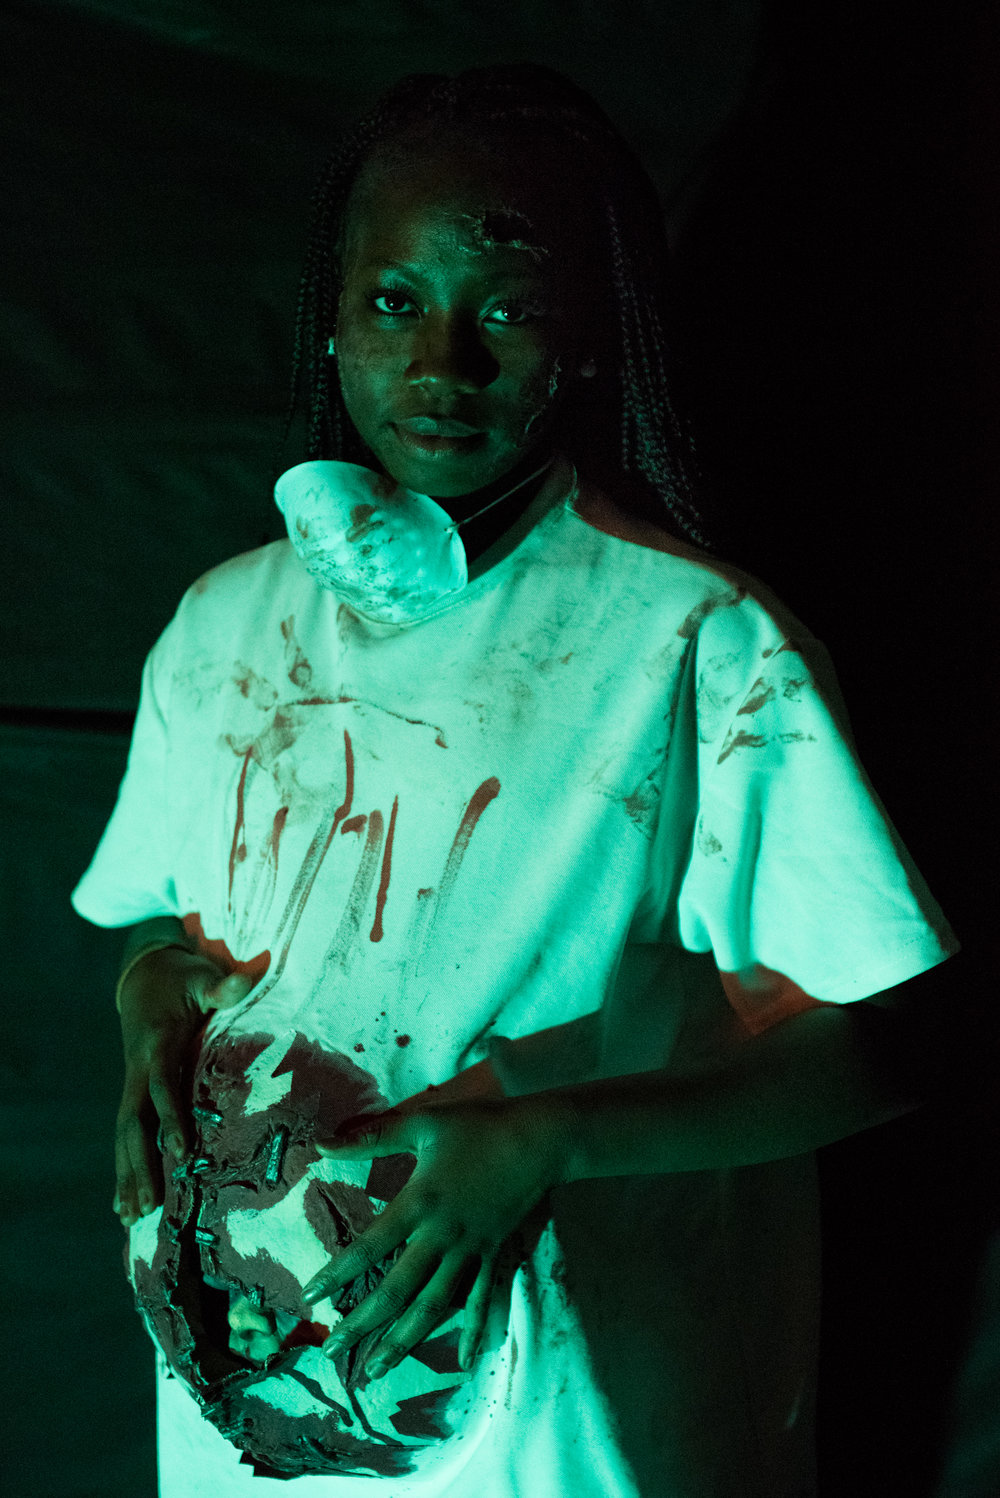 10/26/16 – Belmont, MA – Sophomore Aisha Bance poses for a picture in her costume during the third annual Belmont High School Haunted House which raises money for the Saint Rock Haiti Foundation at Belmont High School on Wednesday, Oct. 26, 2016. (Photo by Nicholas Pfosi)